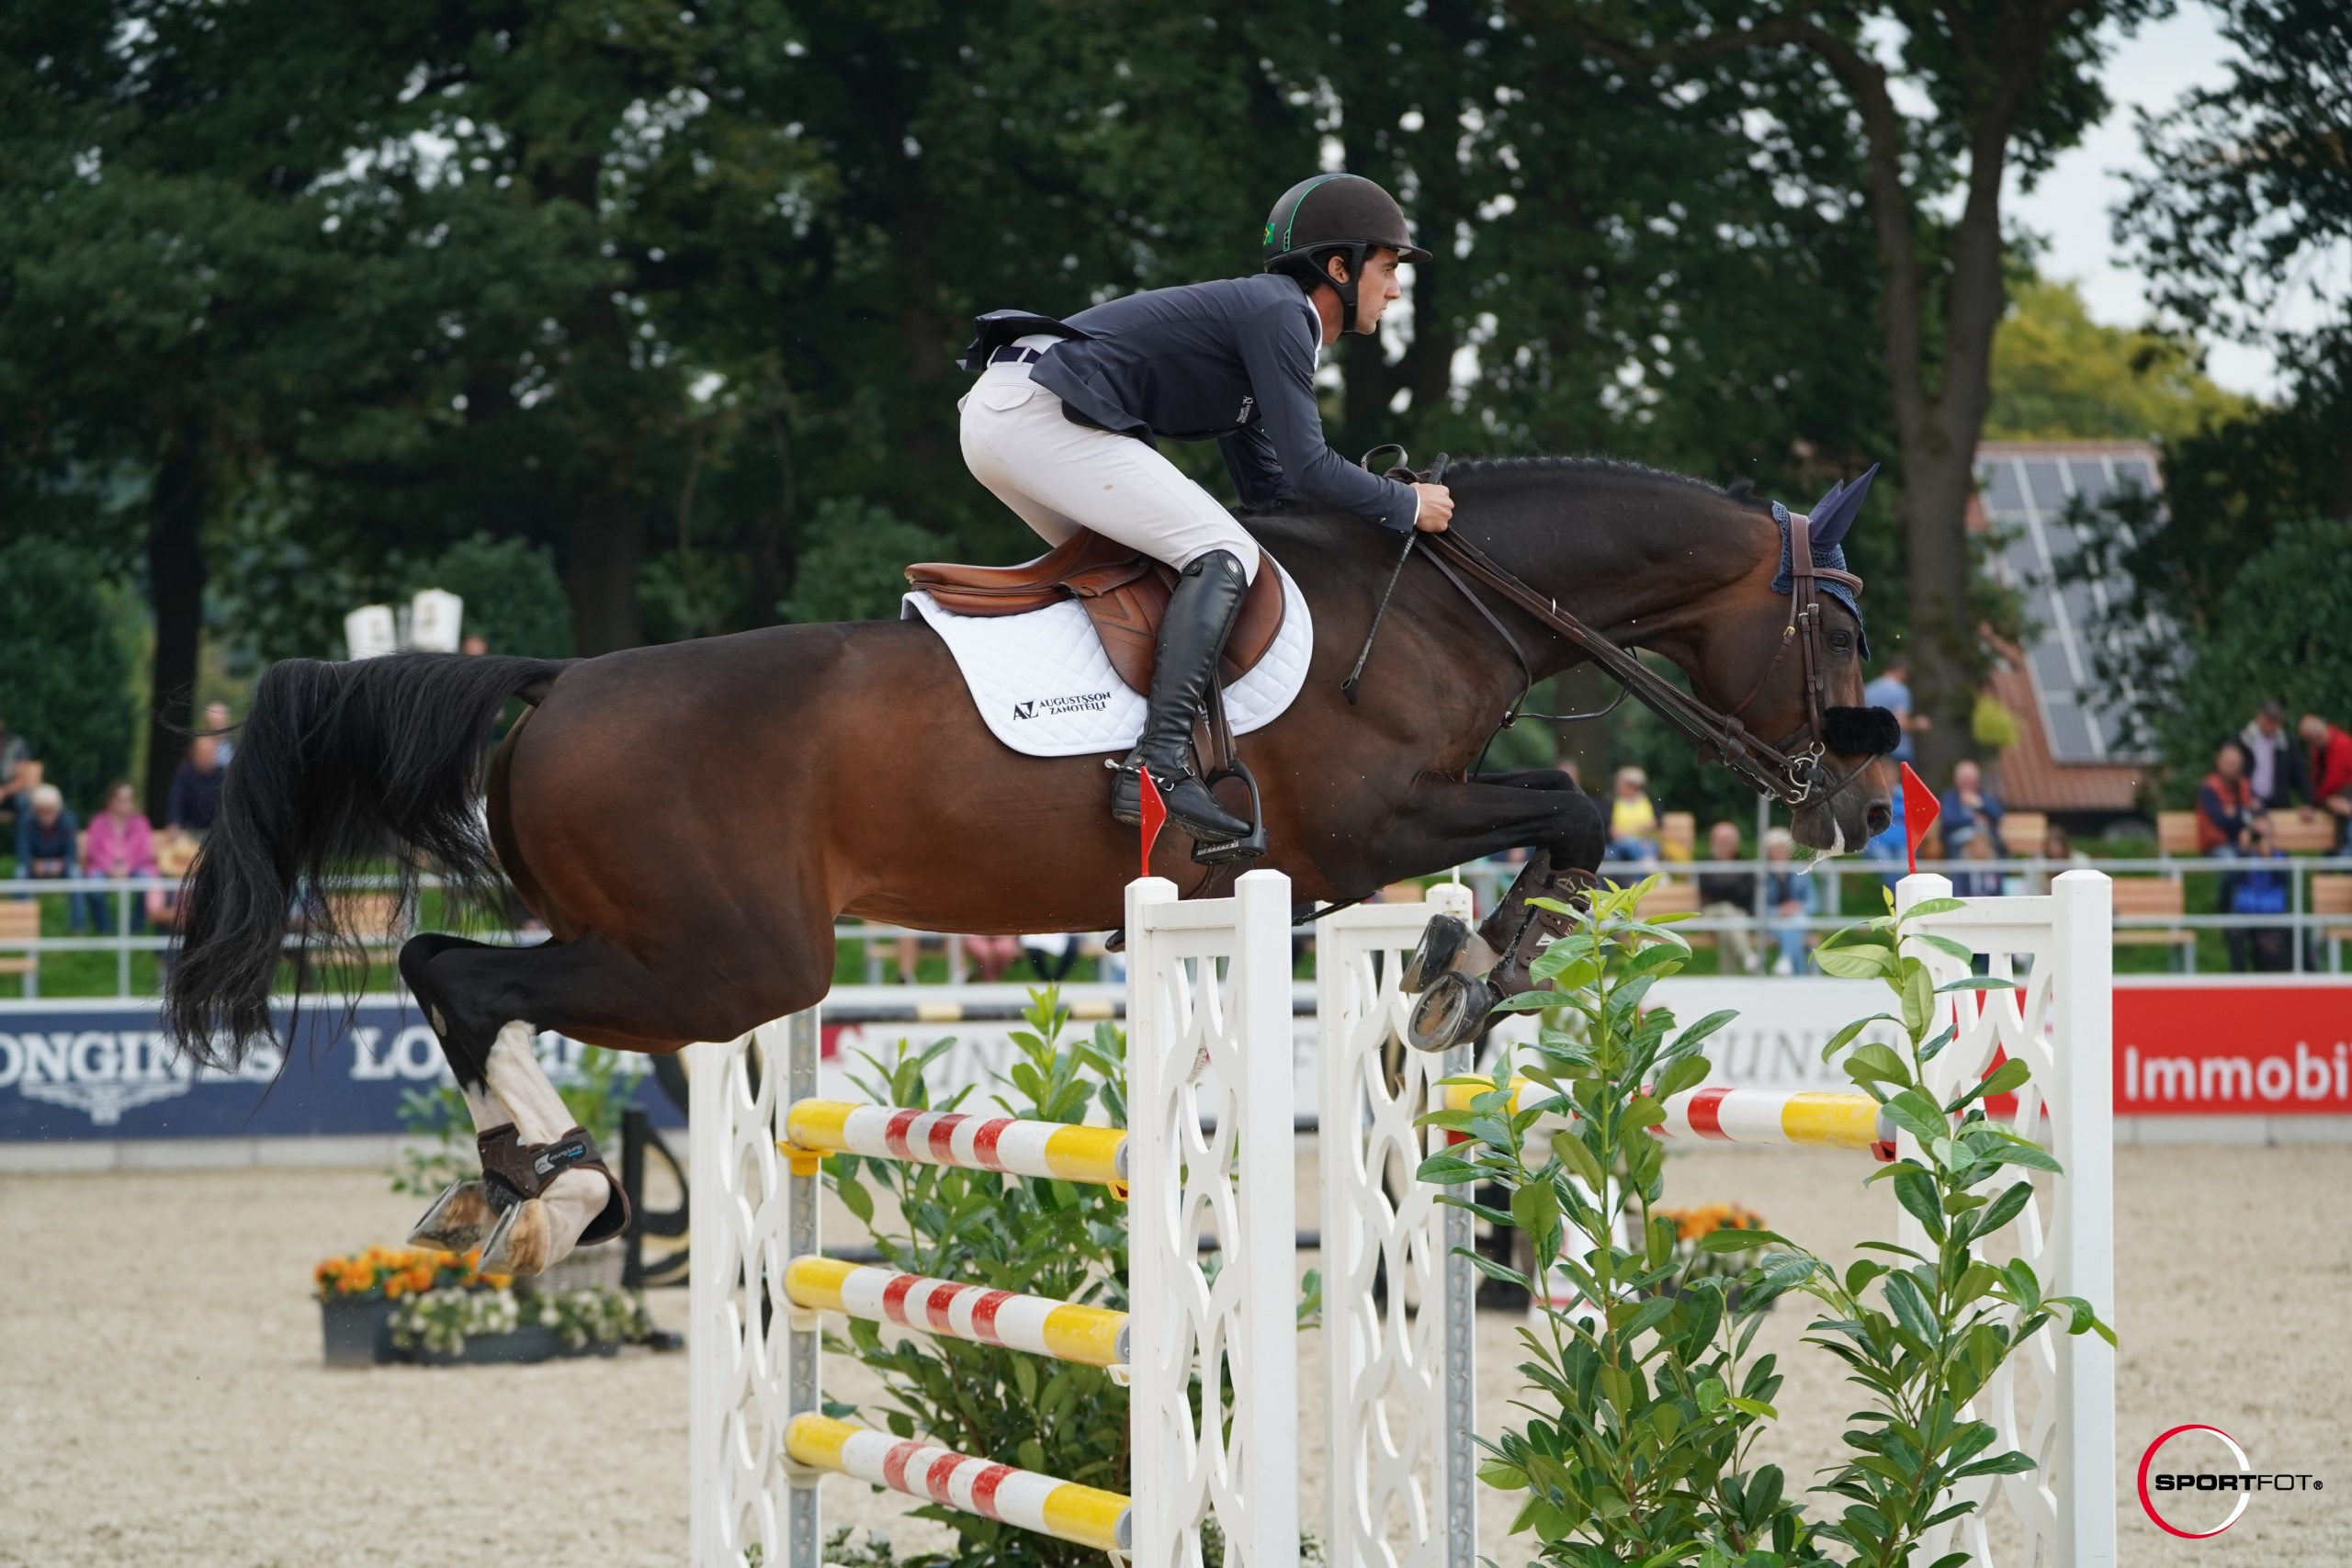 Luigi D'Eclipse with a nice clear in yesterdays 2* qualification at the European Championships in Riesenbeck!